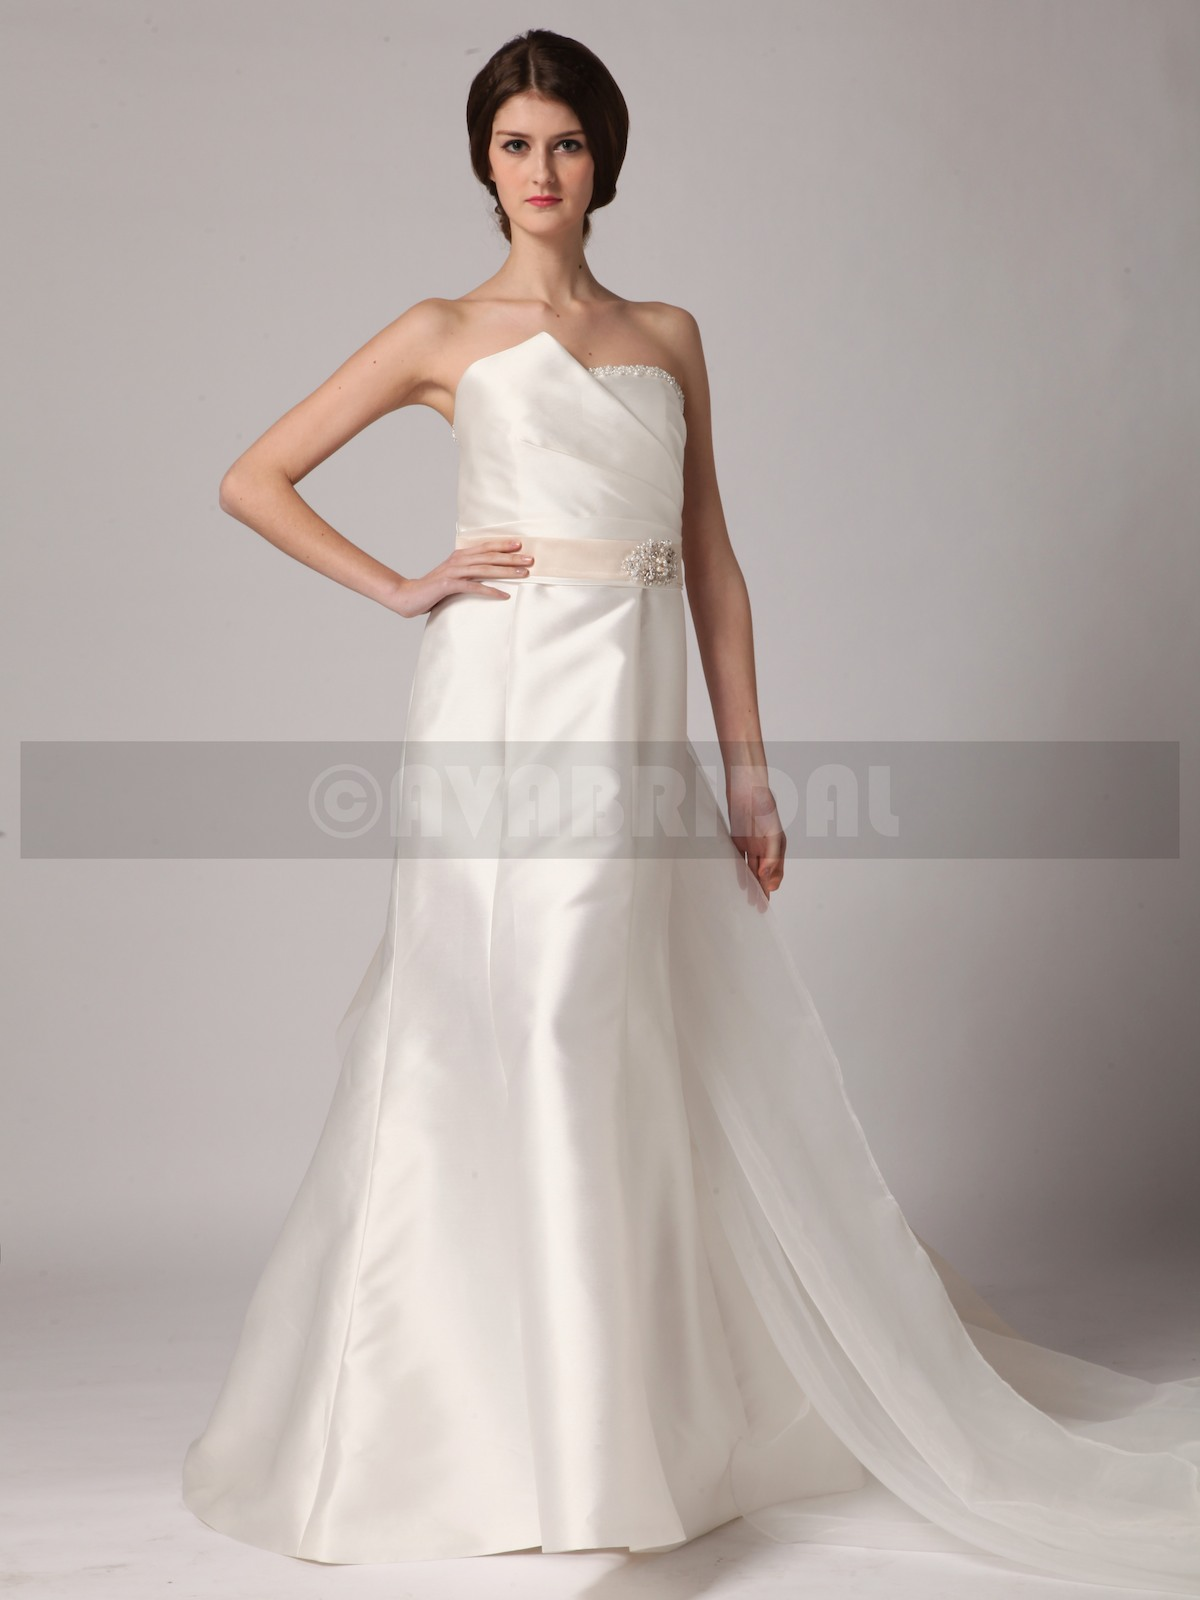 Non Traditional Wedding Dress - Shirley - Front